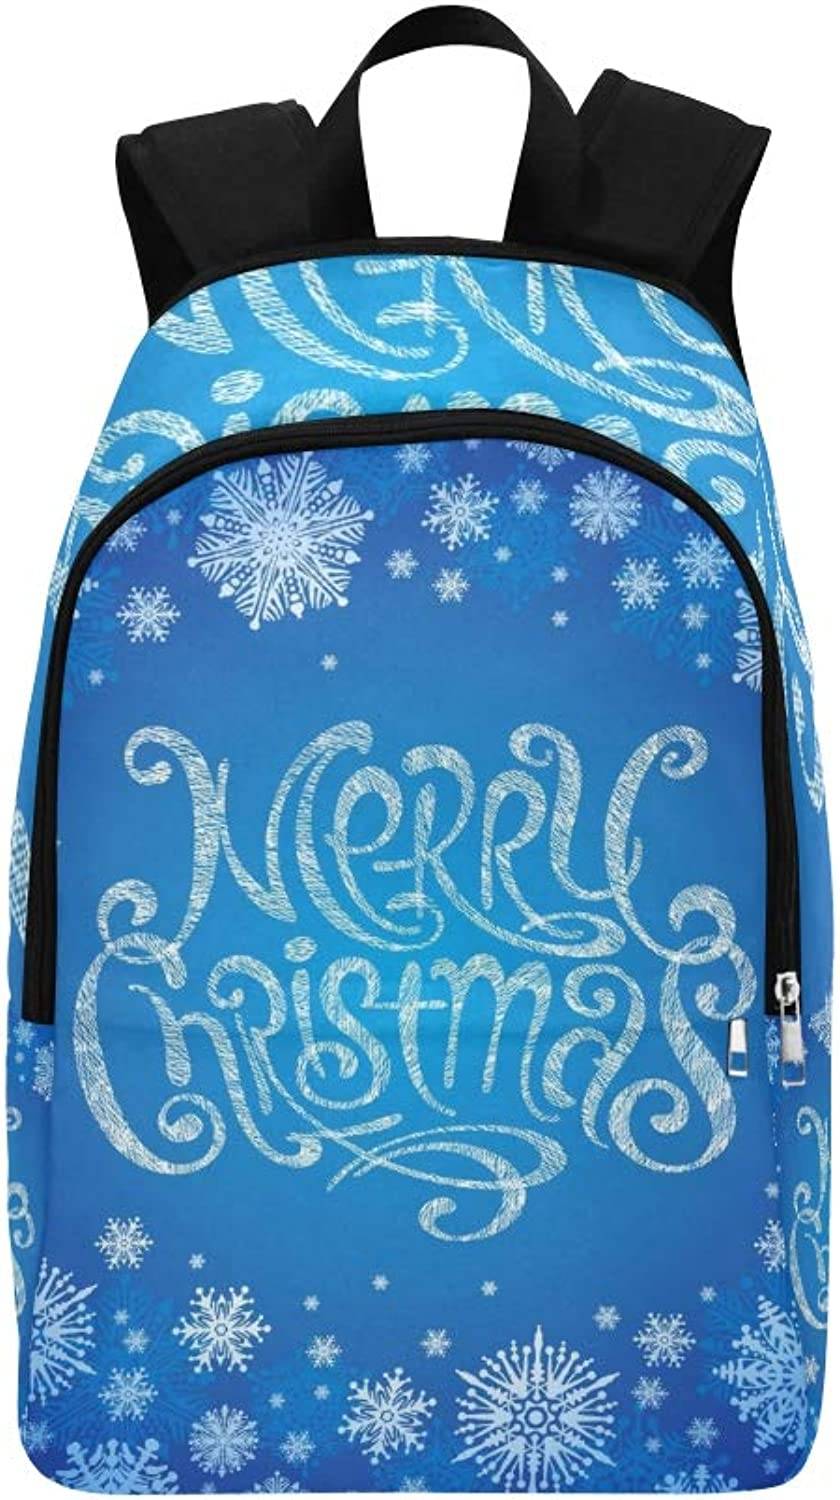 Christmas Hand Drawn Greeting Sign Casual Daypack Travel Bag College School Backpack for Mens and Women